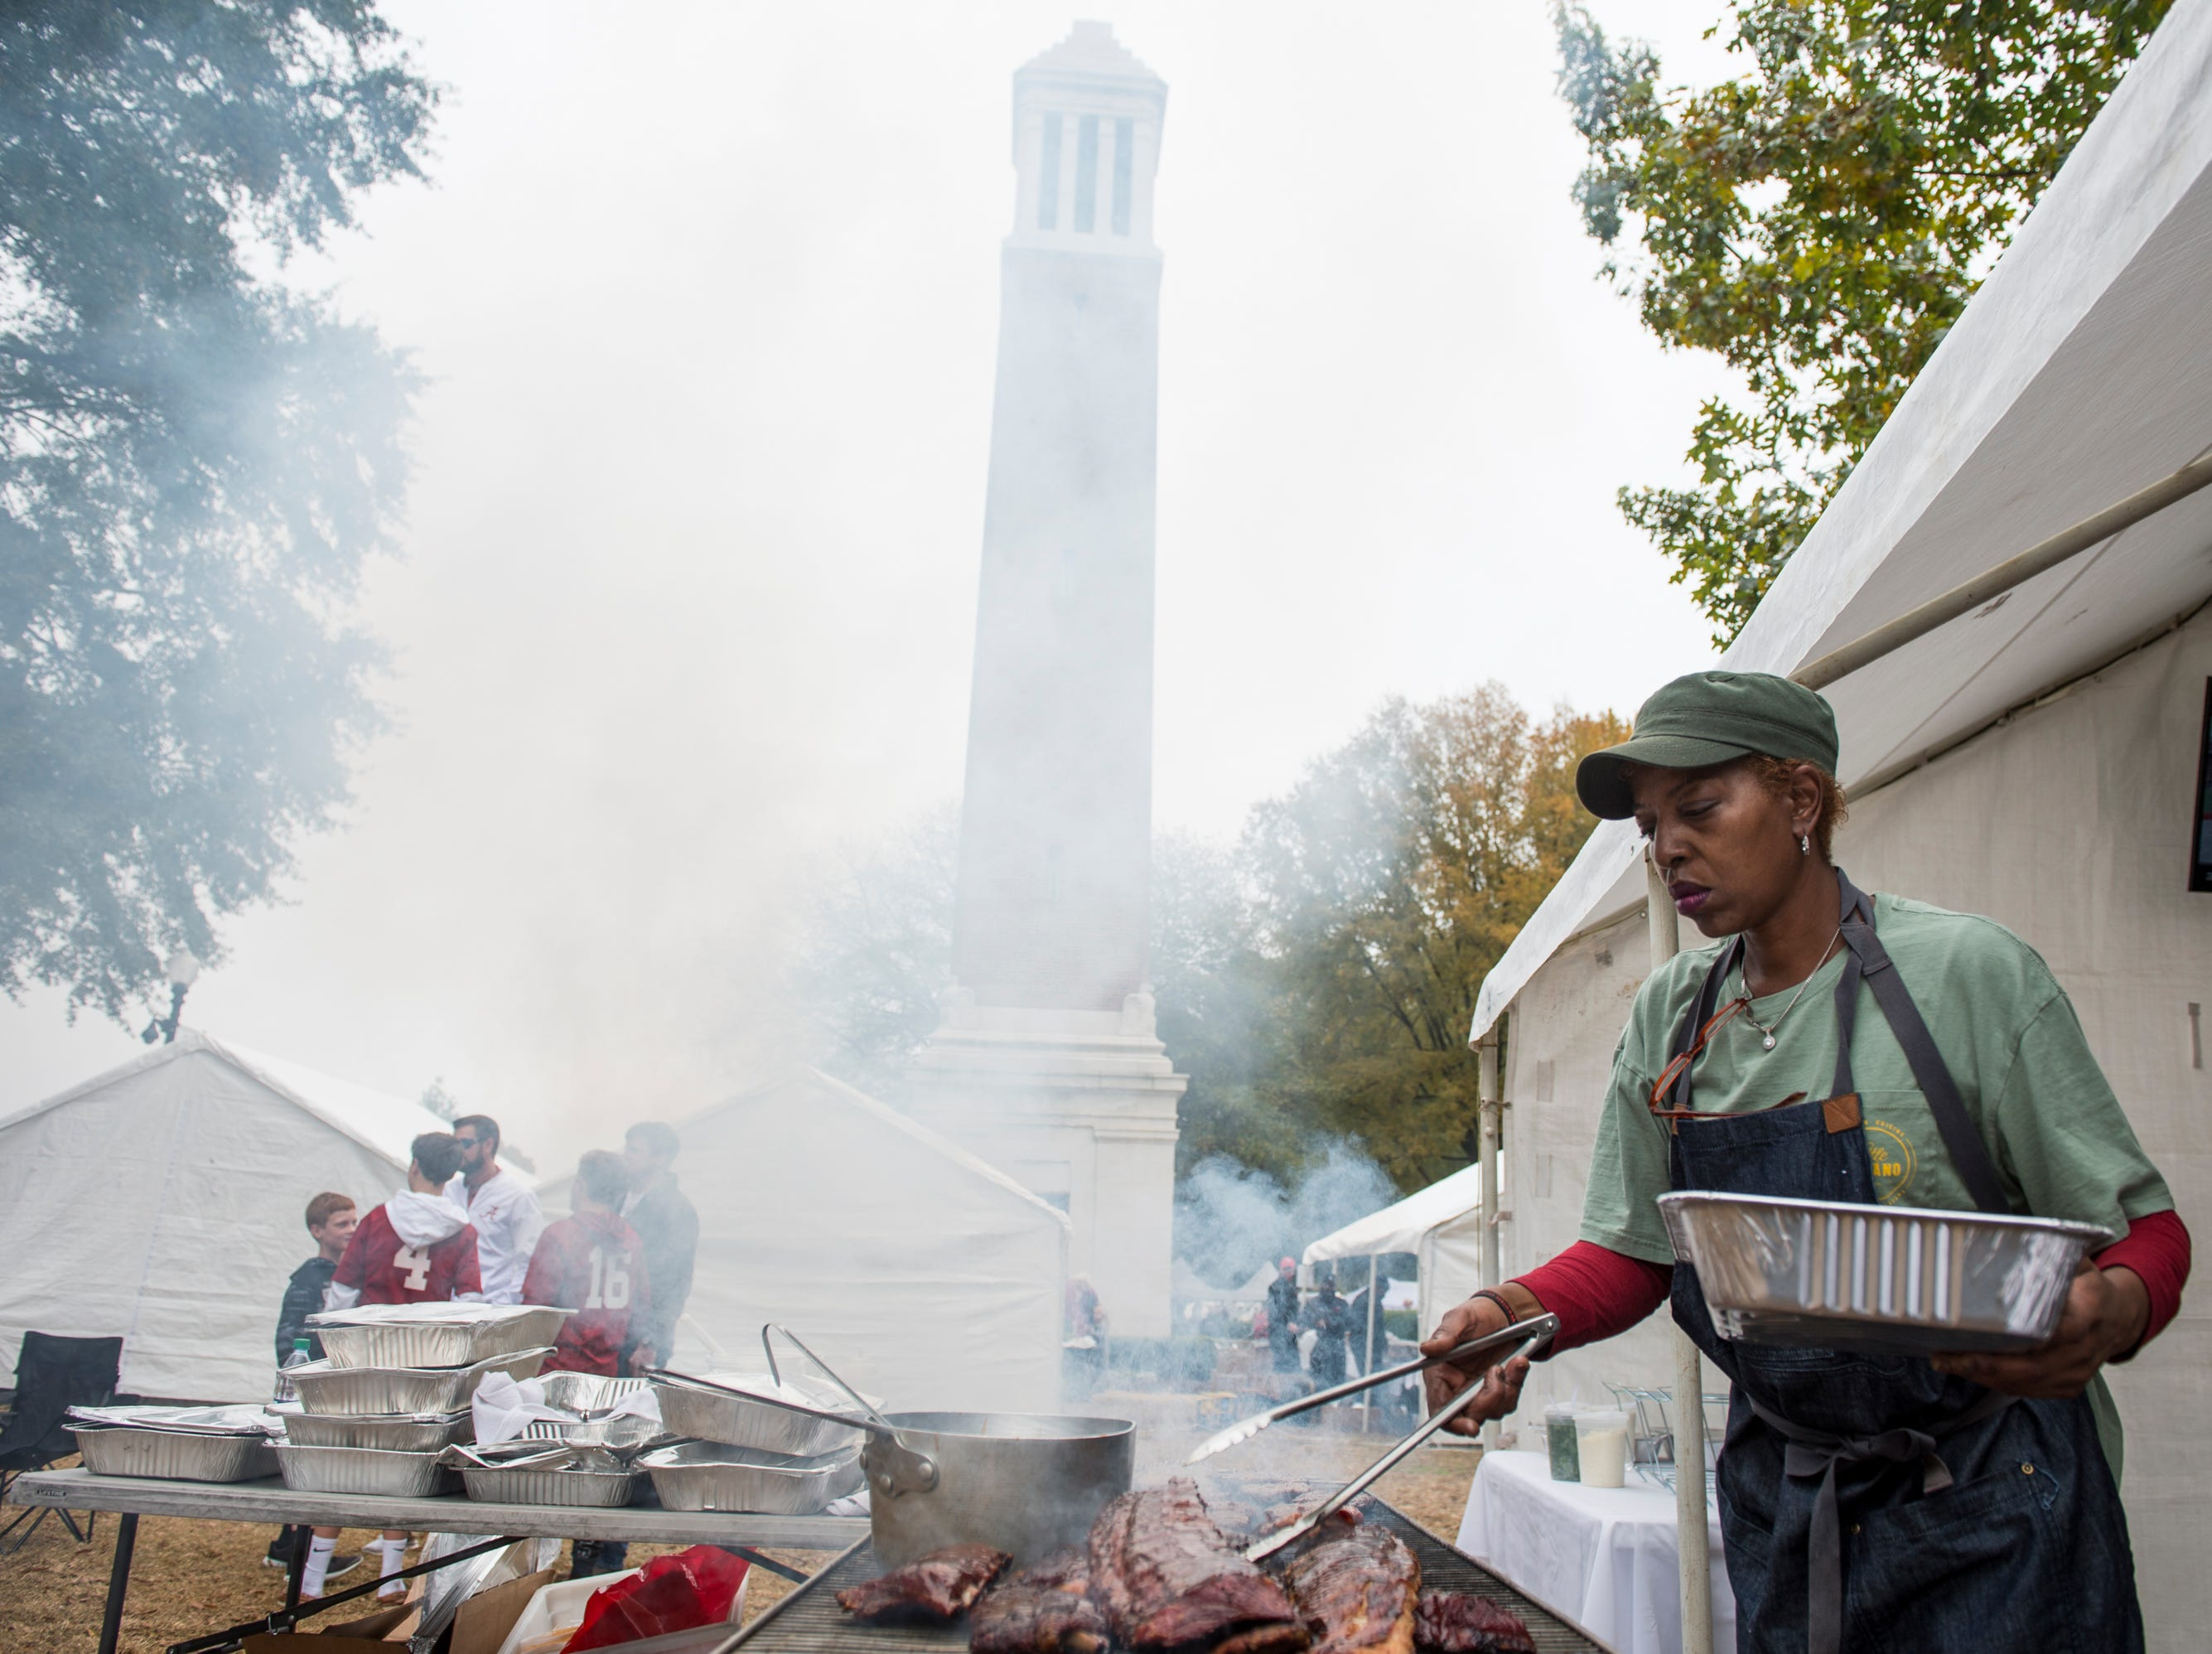 Tessie Thomas cooks up some tailgate food on the grill outside Bryant-Denny Stadium in Tuscaloosa, Ala., on Saturday, Nov. 24, 2018.